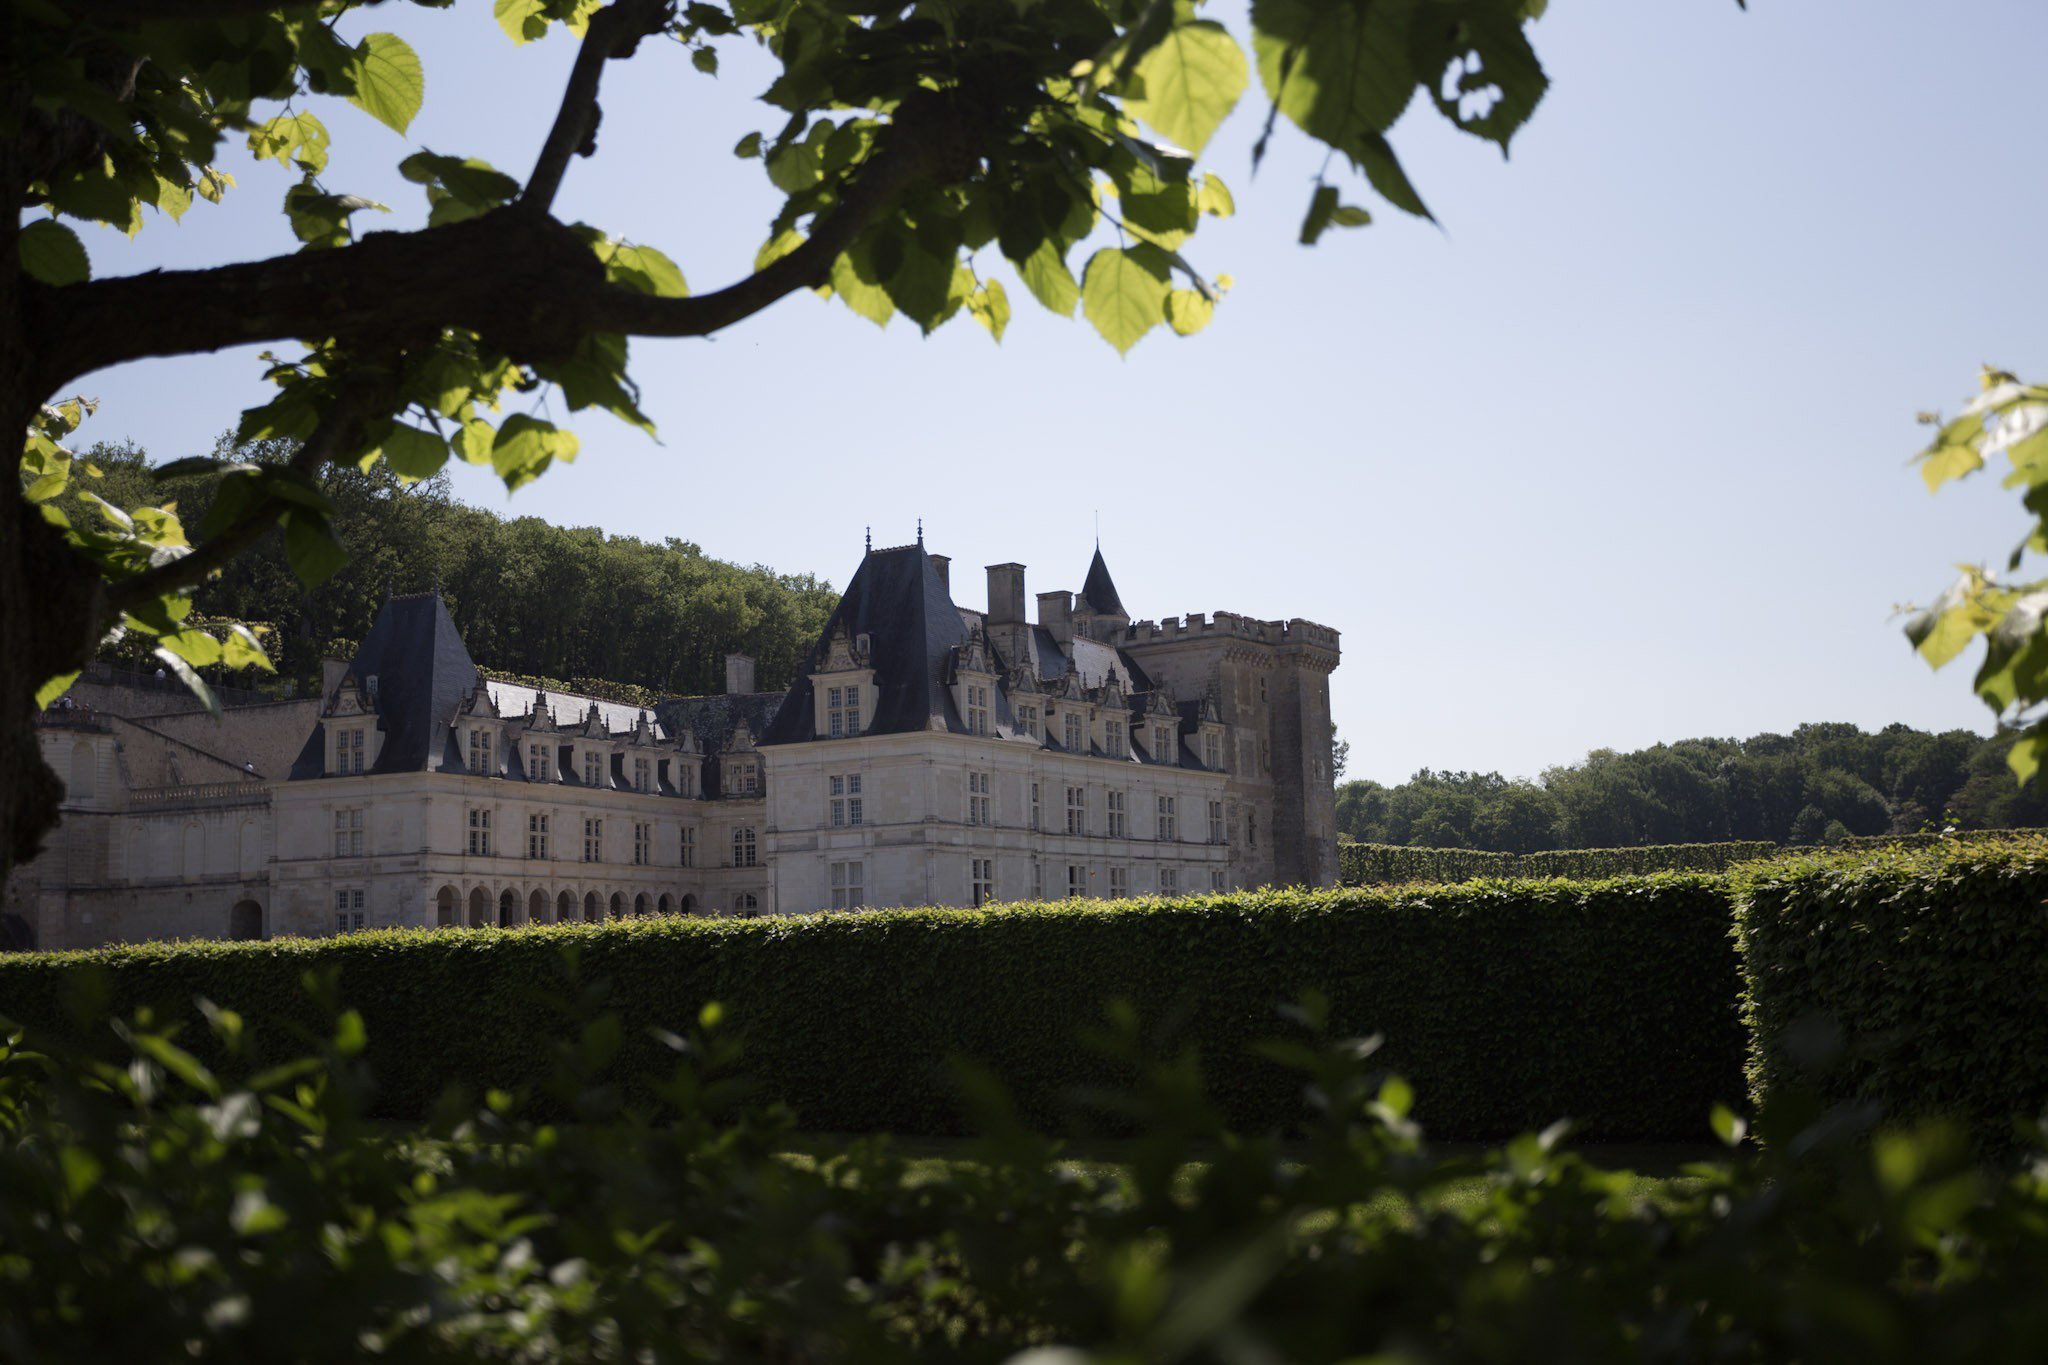 Riding up to the chateau we were greeted with this sight over the hedges